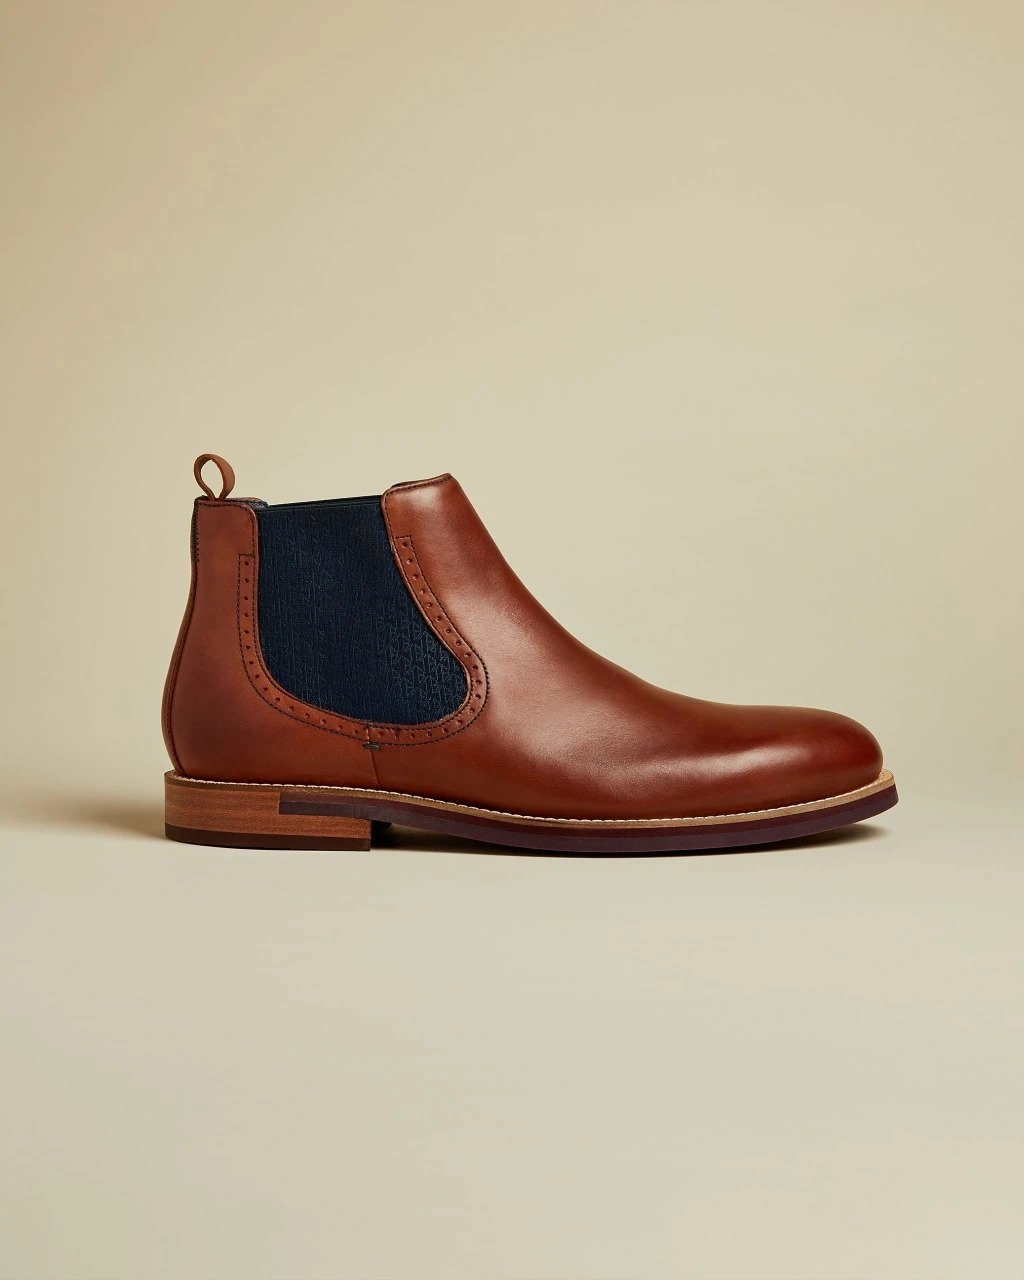 Leather Chelsea Boots, Ted Baker